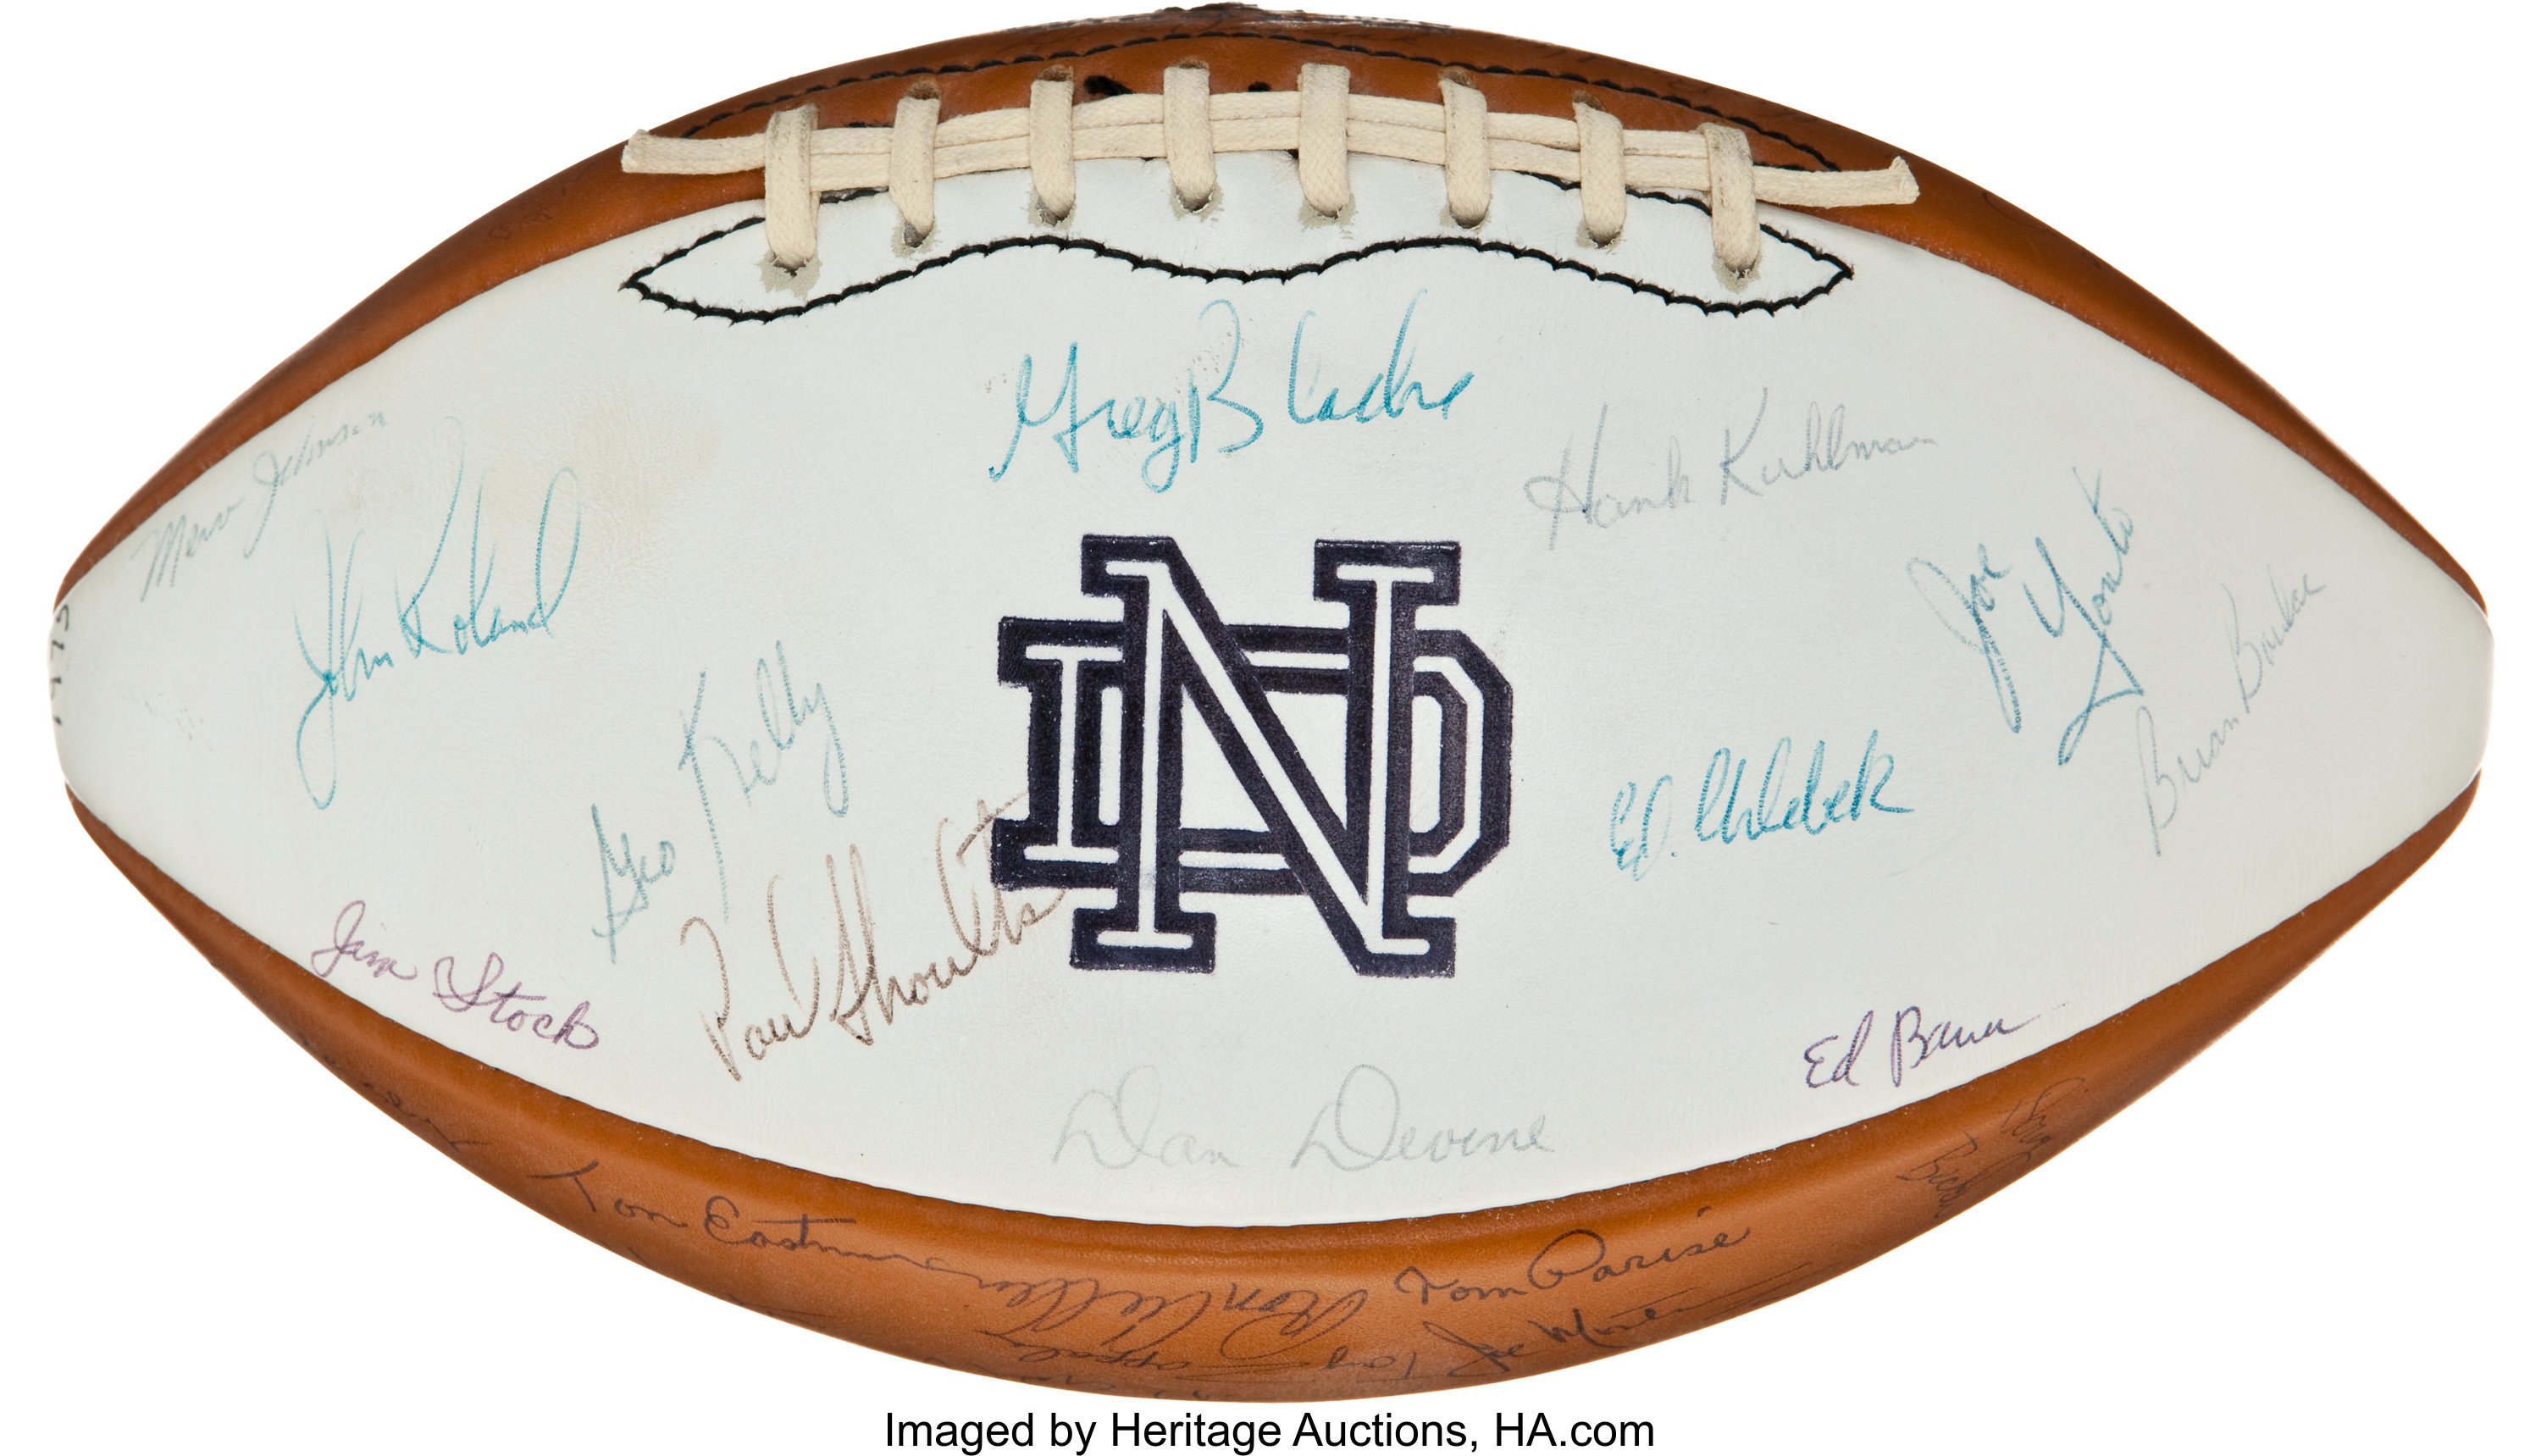 1975 Notre Dame Fighting Irish Team Signed Football Football Lot 82057 Heritage Auctions